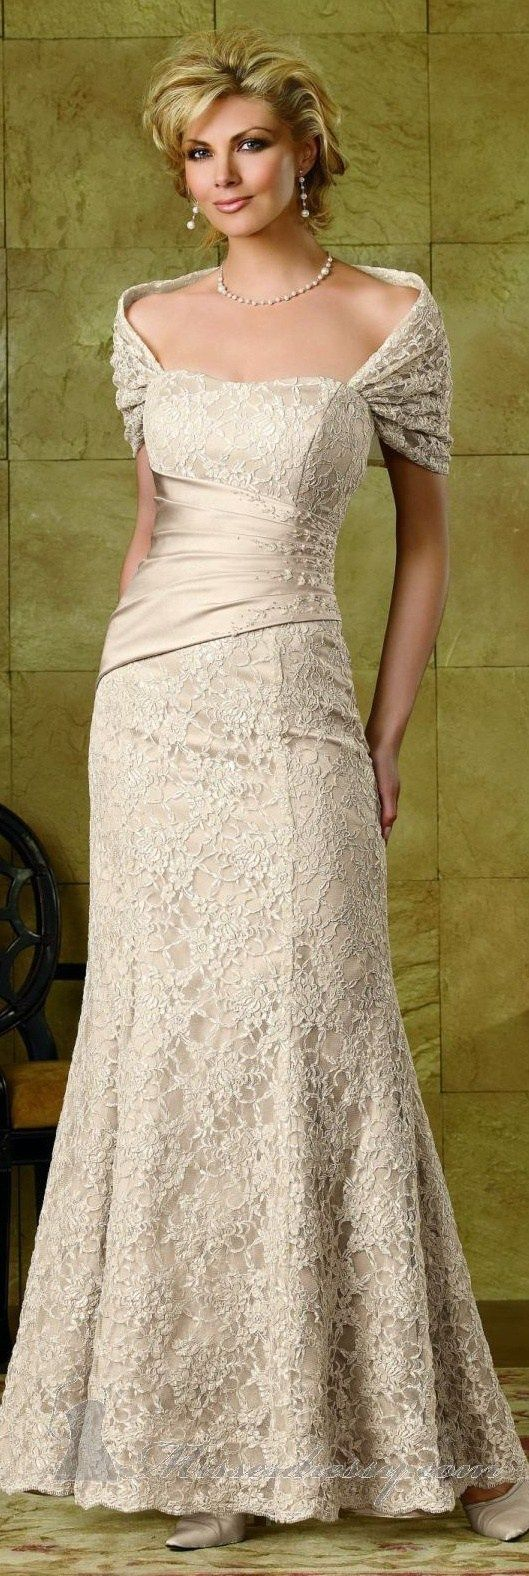 1000  ideas about Older Bride Dresses on Pinterest - Older bride ...